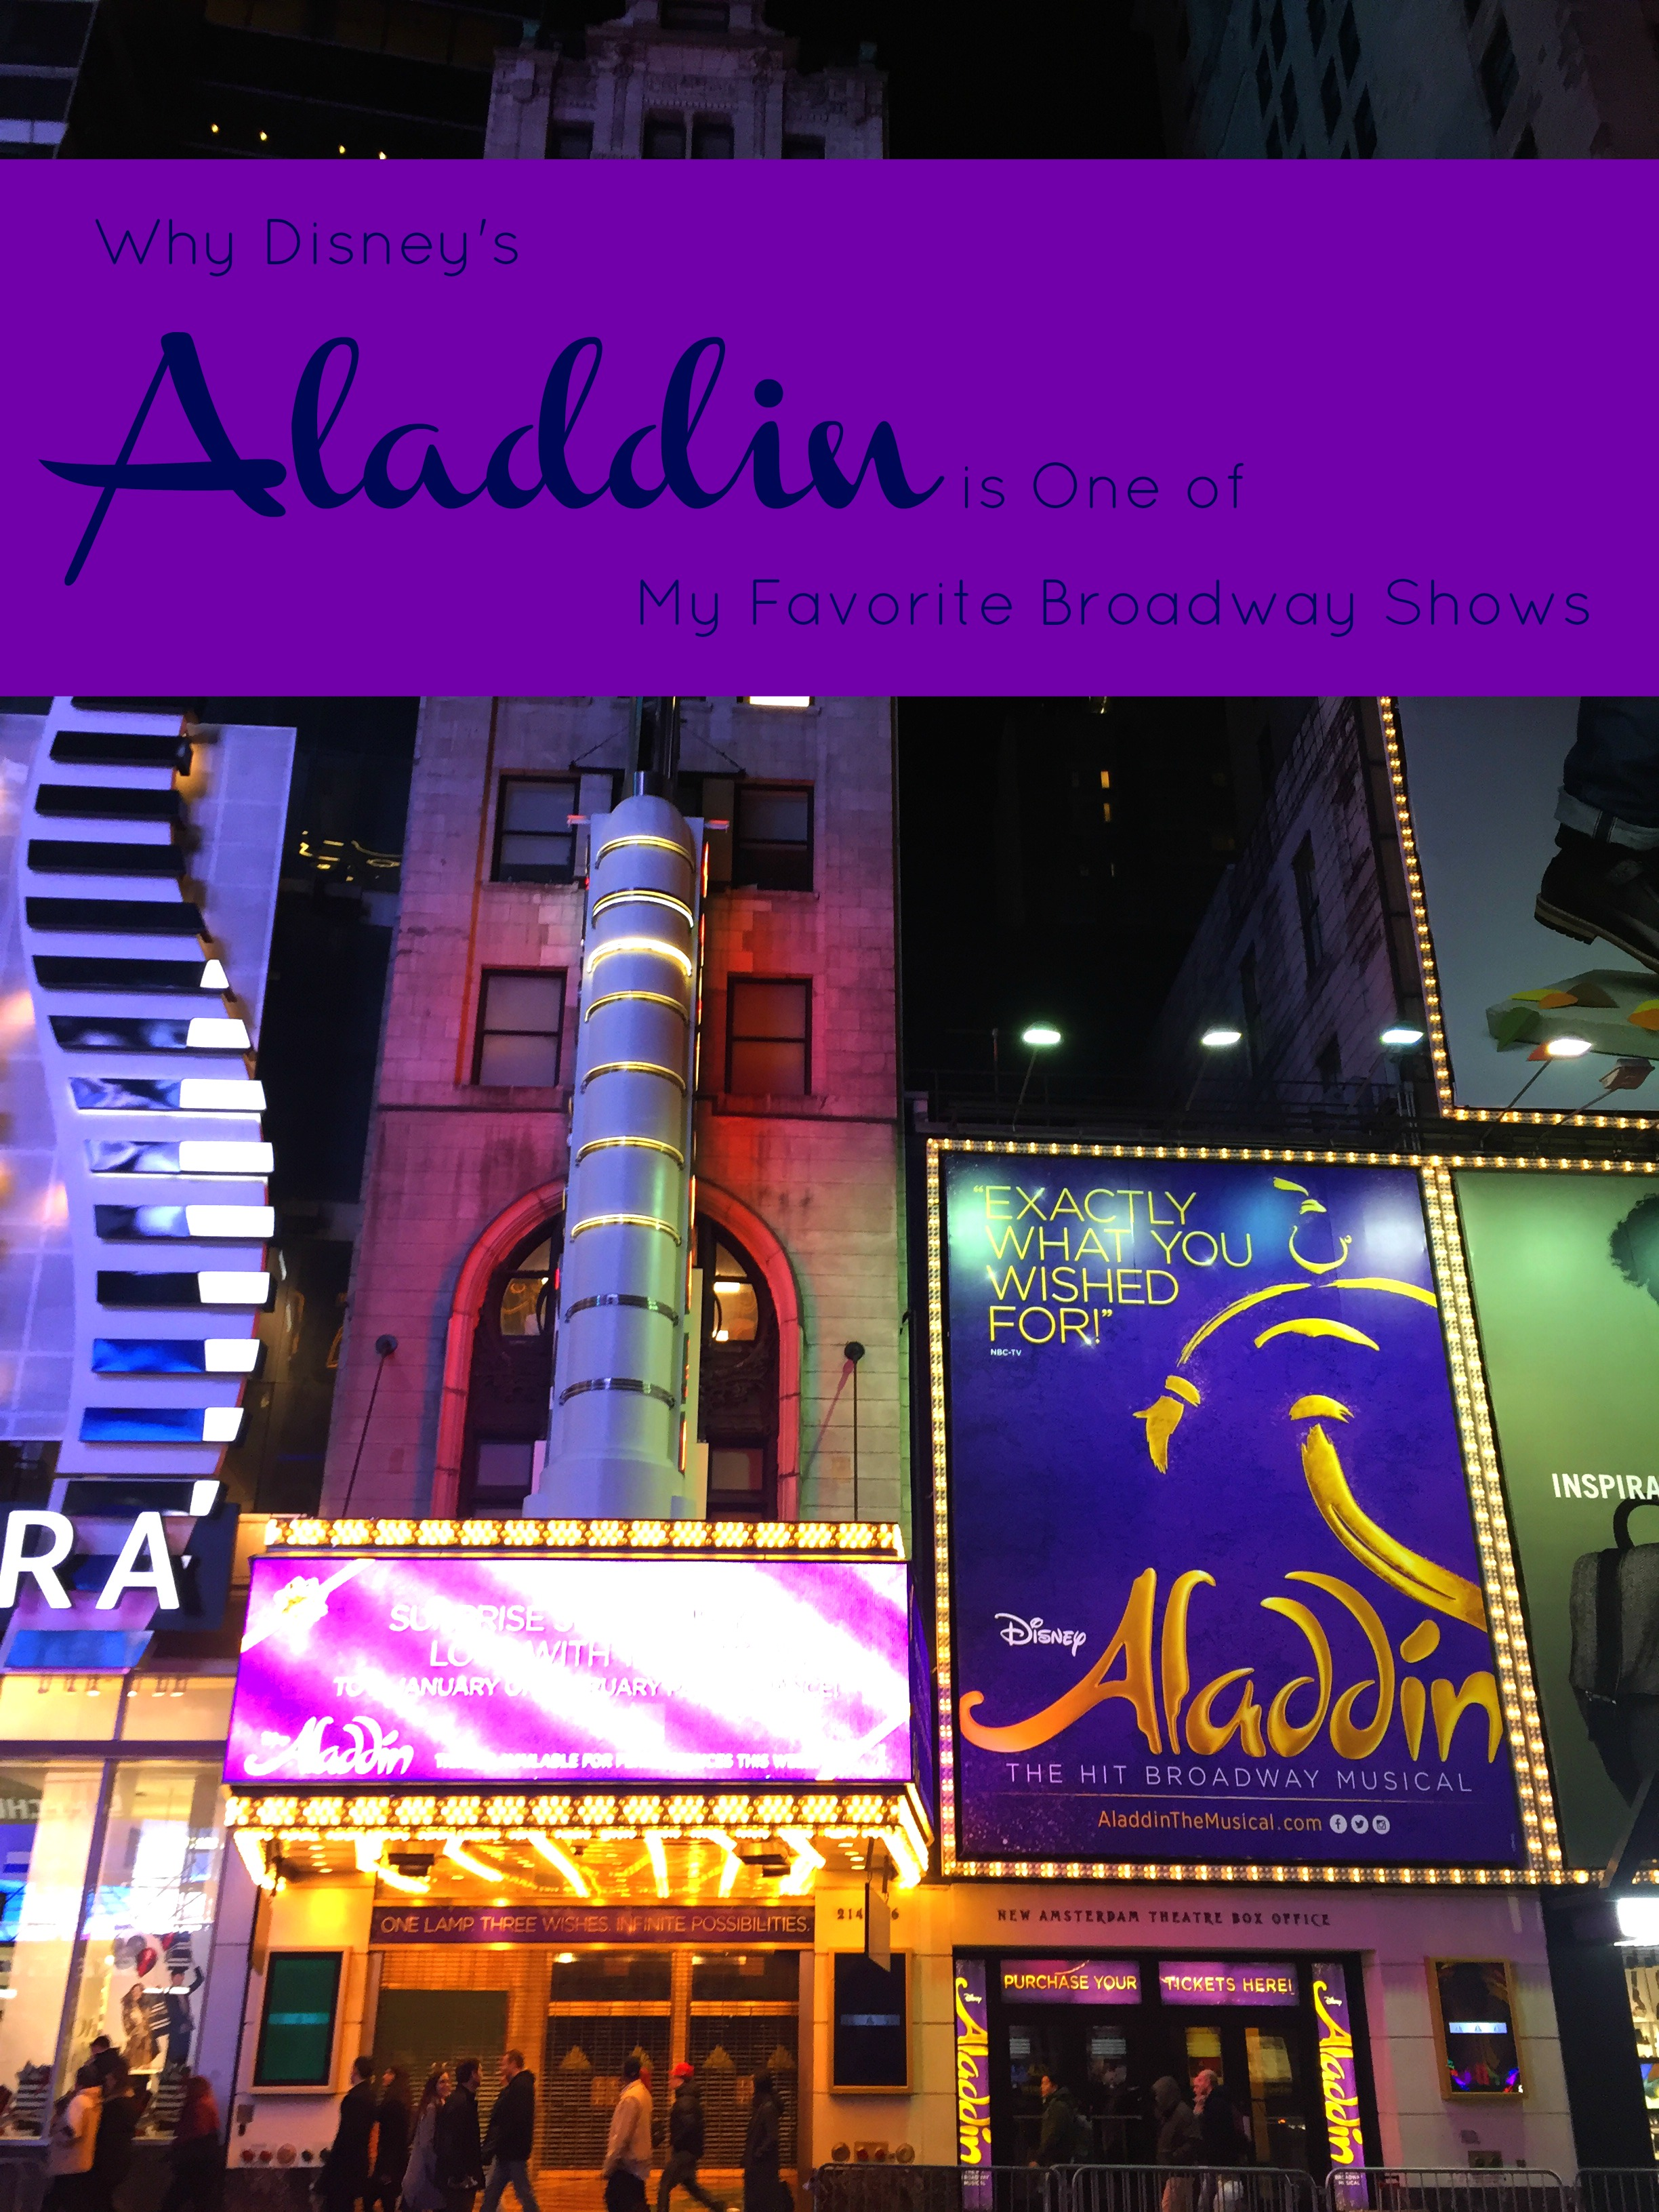 Disney's Aladdin the Musical at the New Amsterdam Theater on Broadway, NY